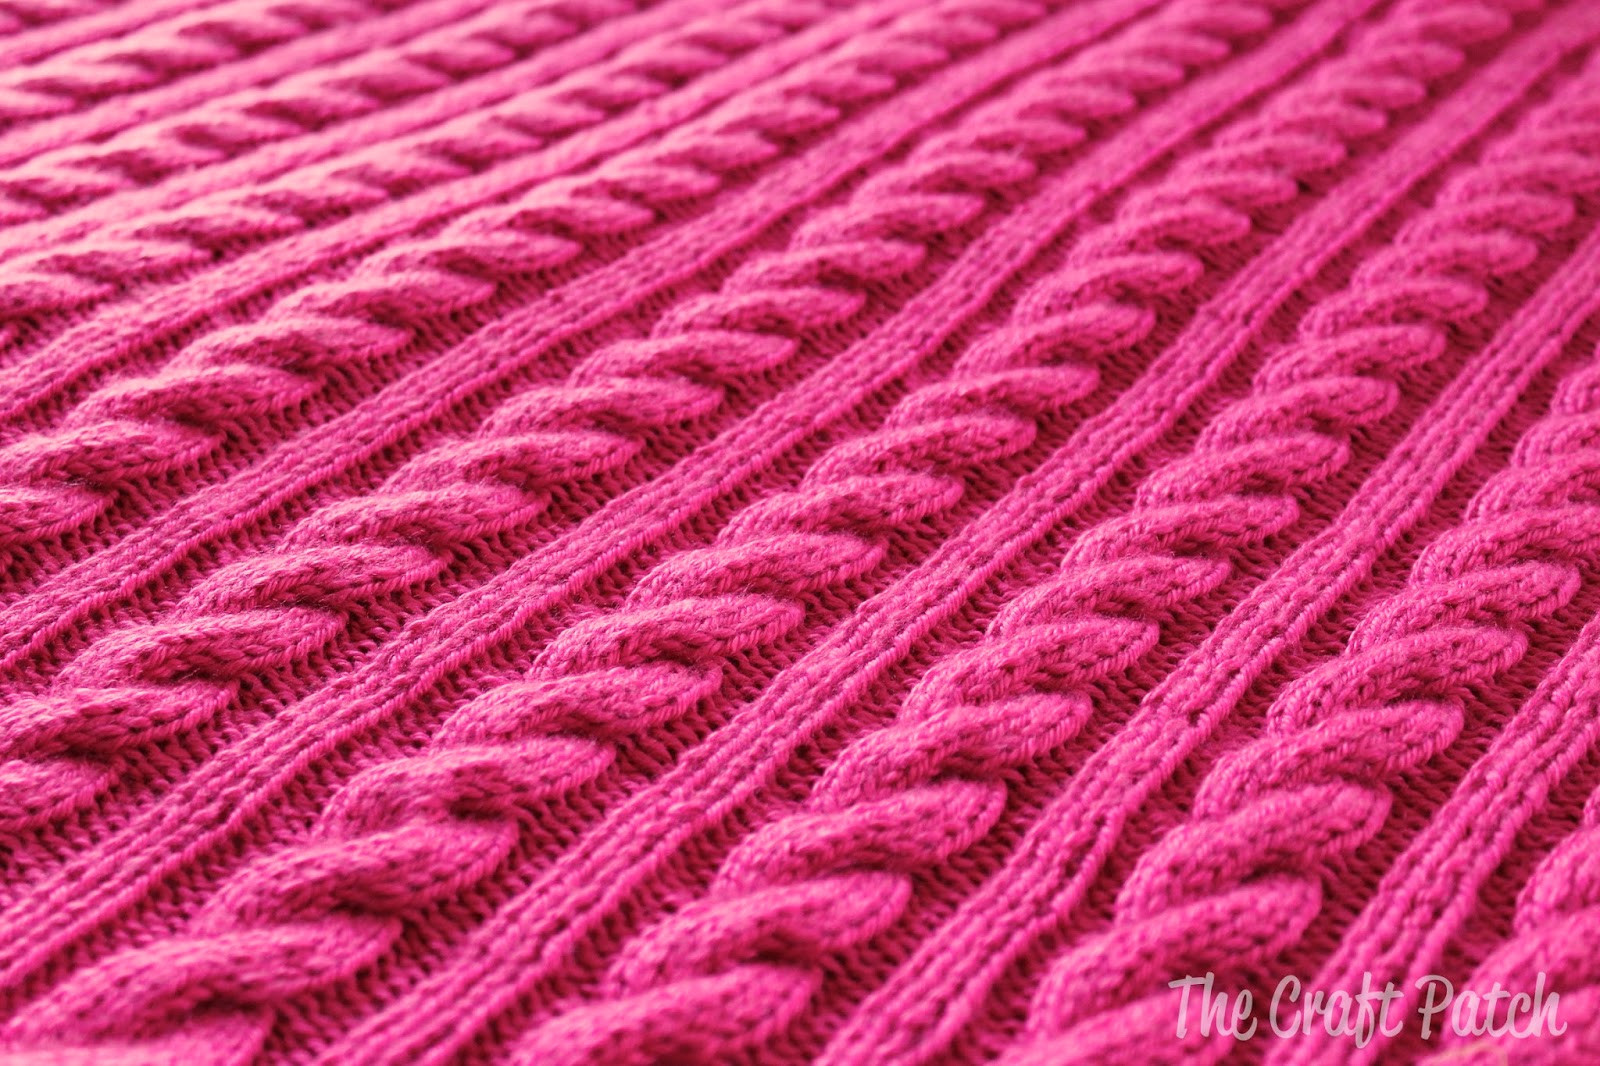 Cable Knit Blanket Luxury the Craft Patch Cable Knit Baby Blanket Of Incredible 49 Pictures Cable Knit Blanket